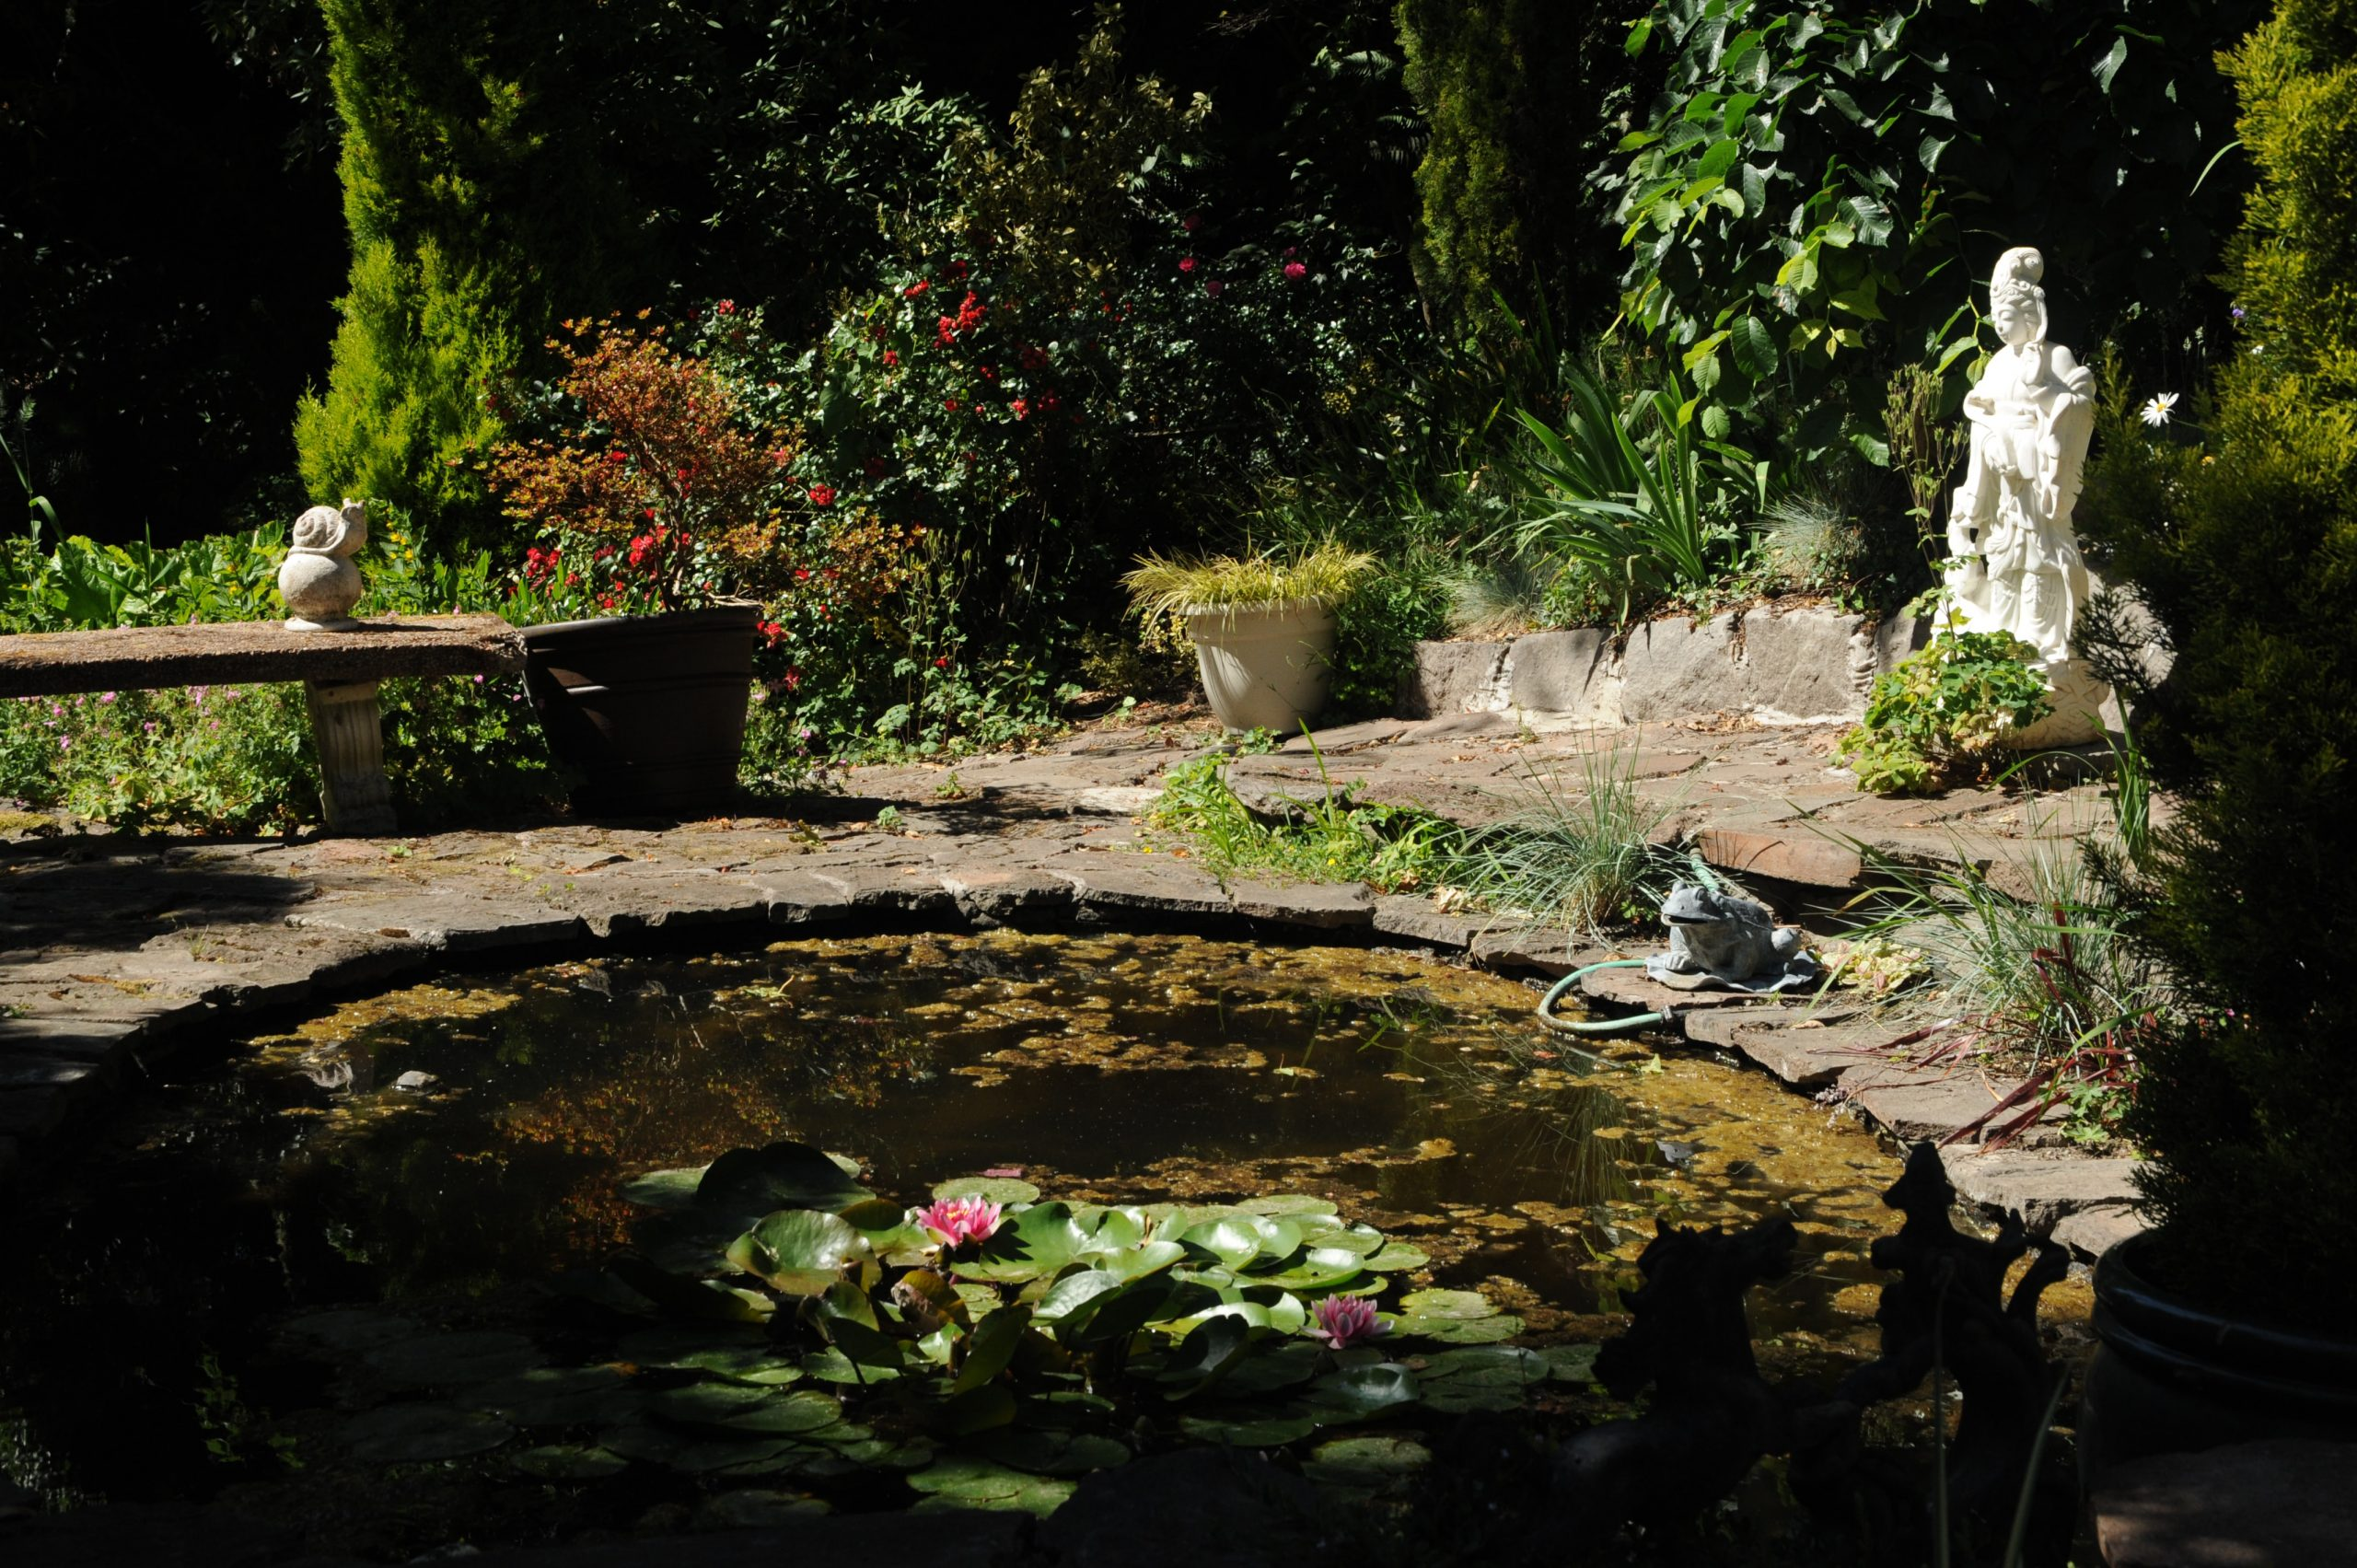 How to drain a pond - 3 easy ways